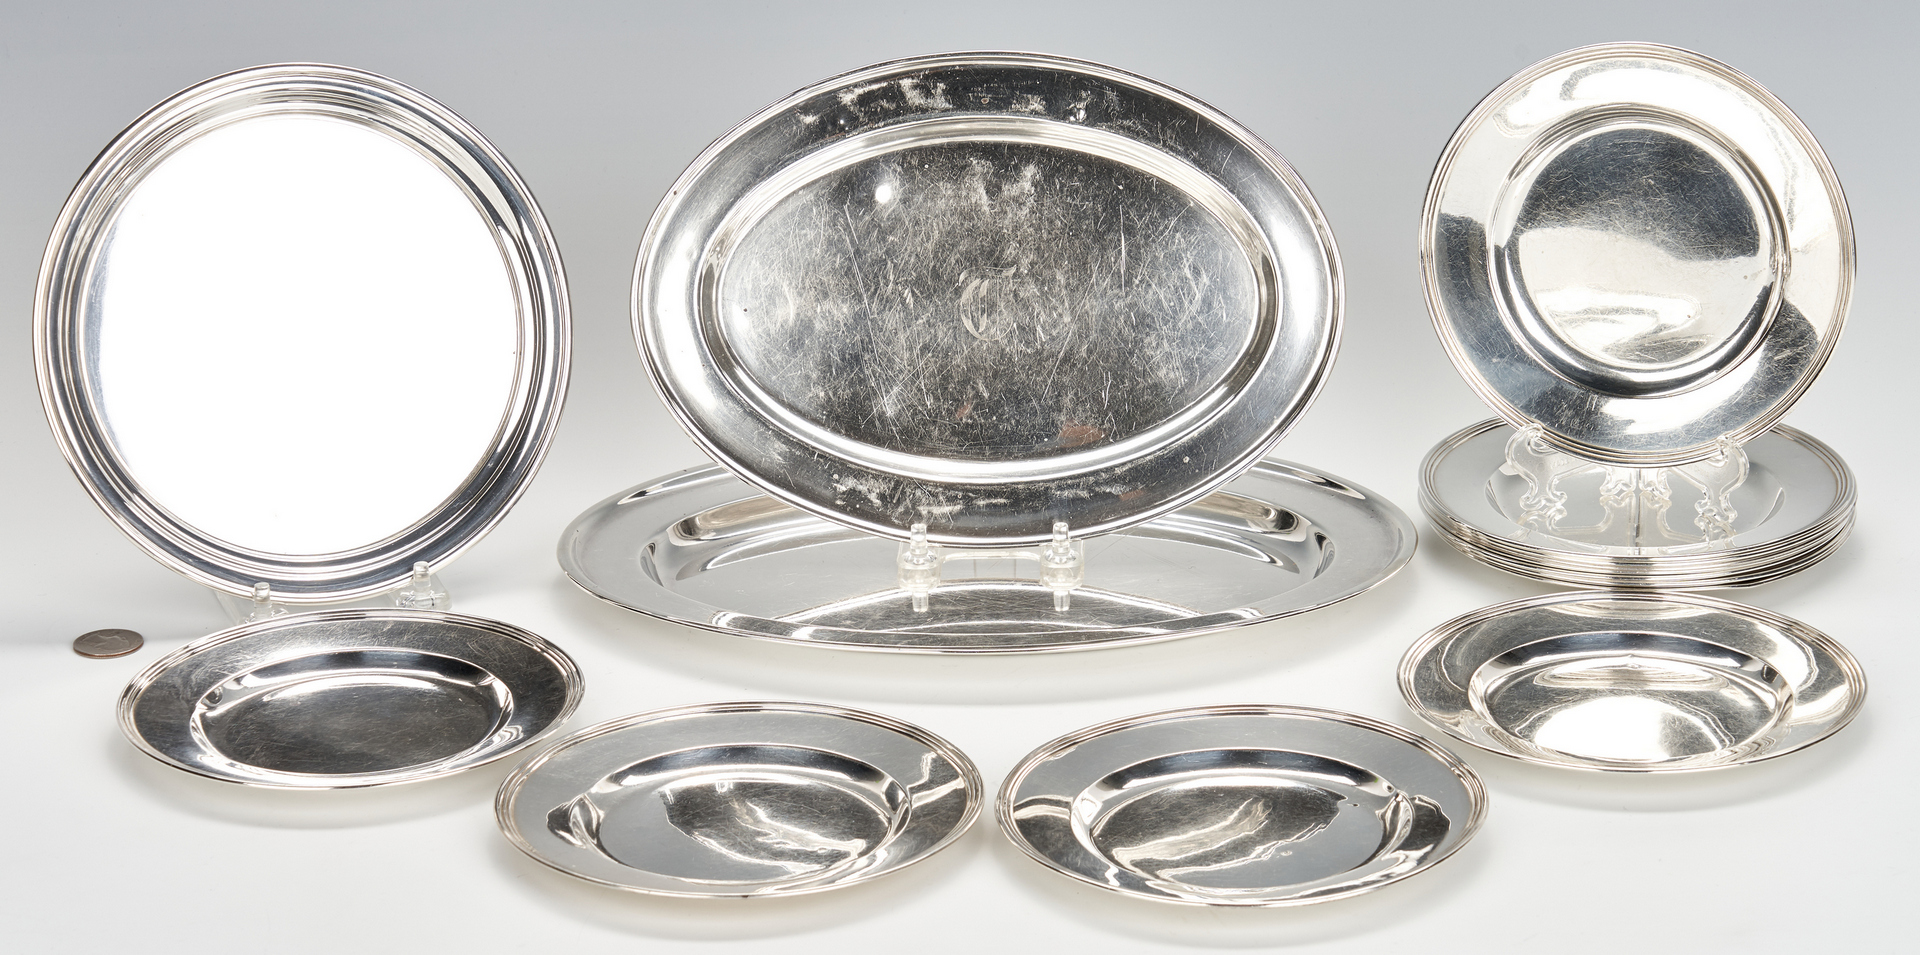 Lot 803: 12 Sterling Bread Plates and 3 Serving Trays